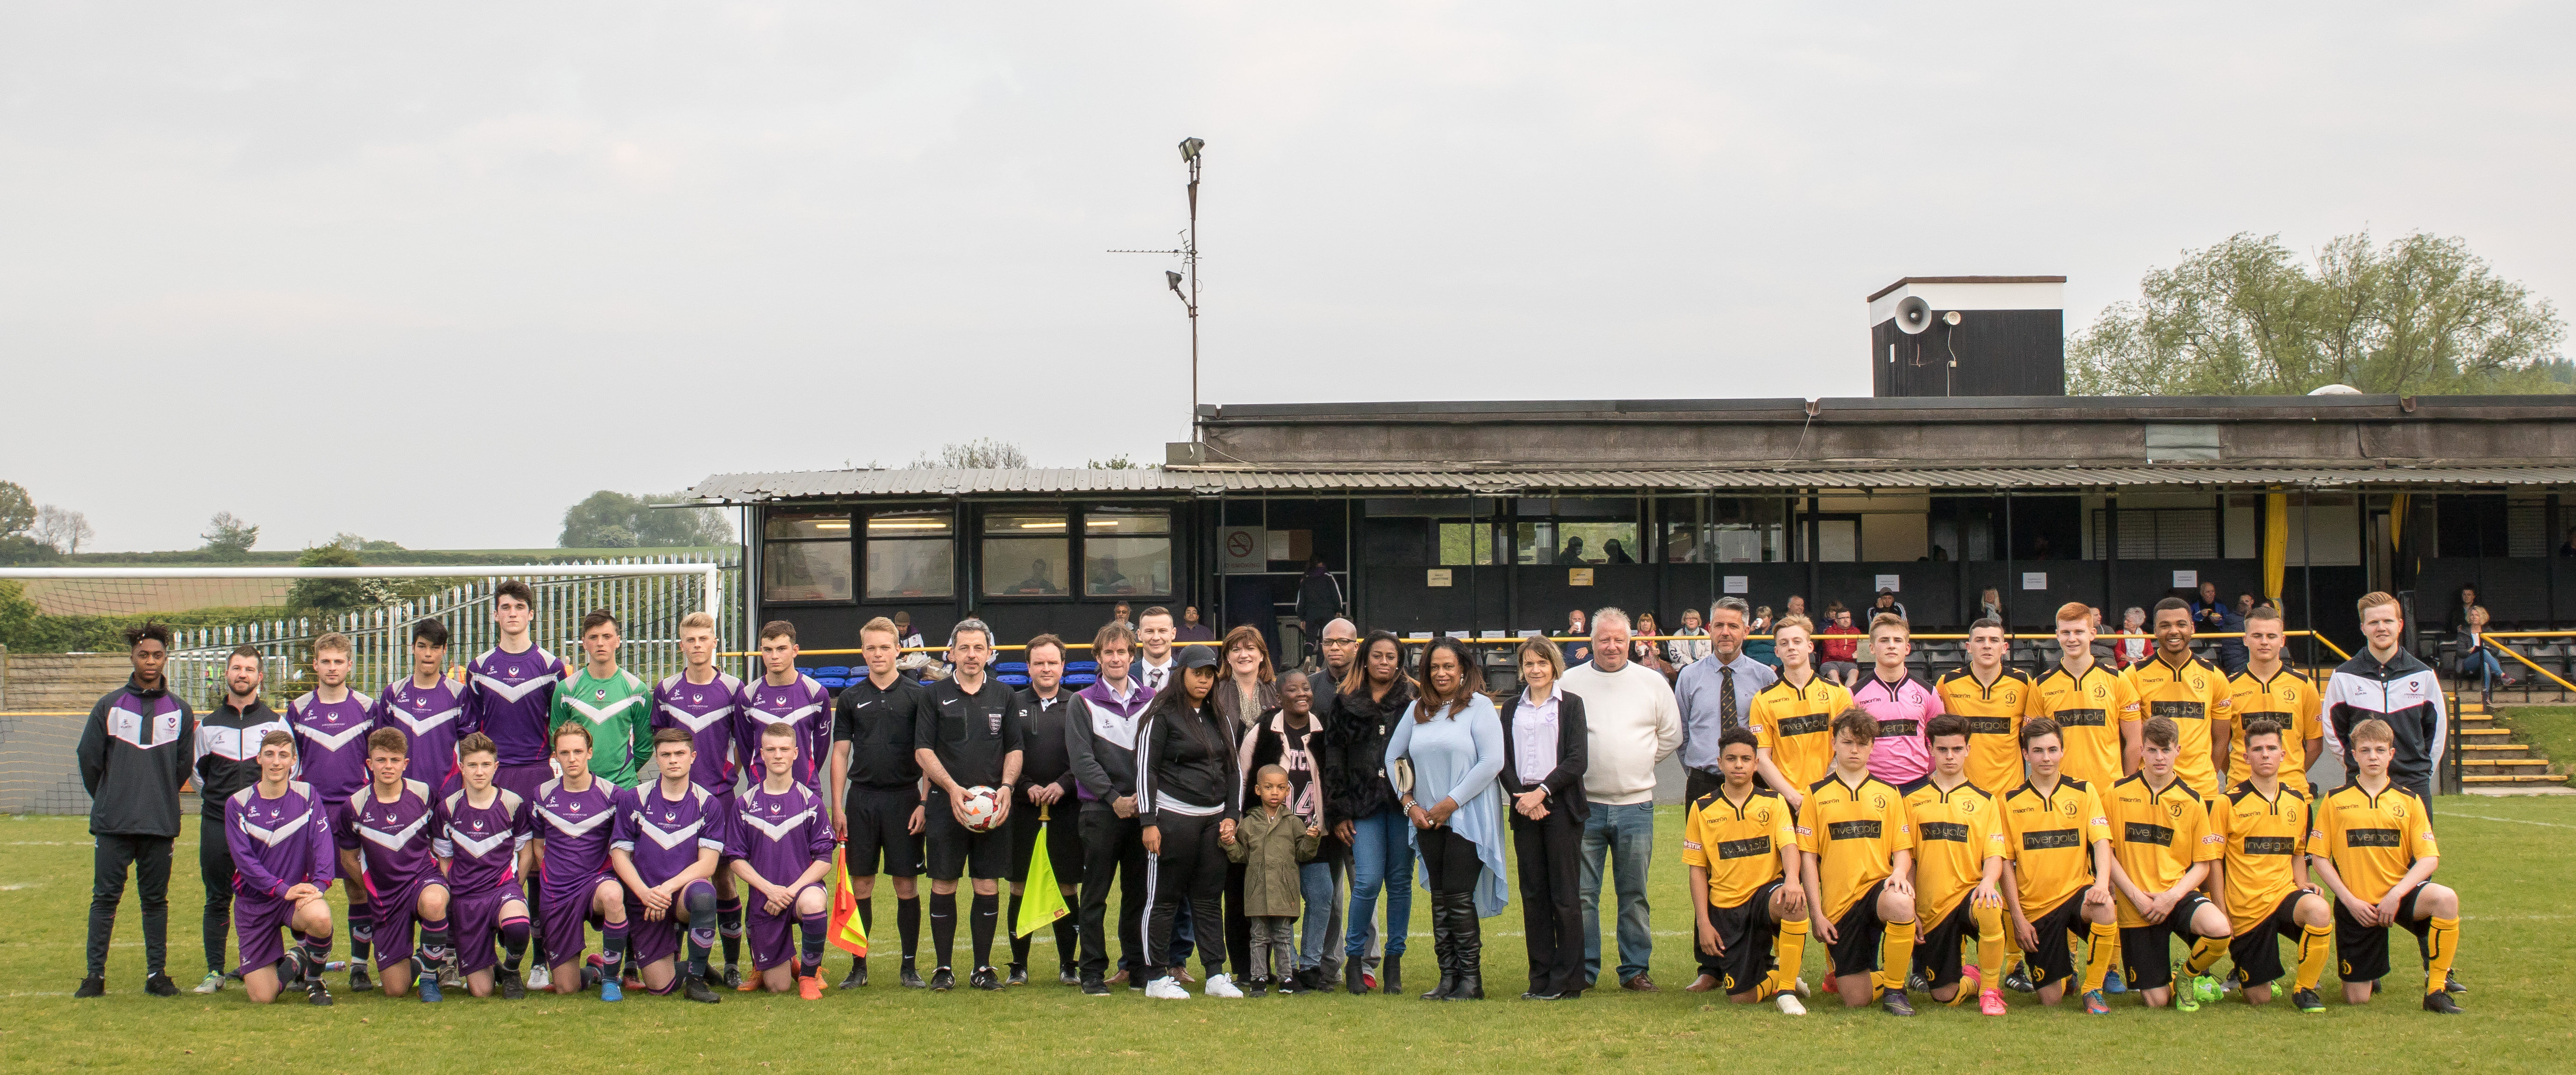 New Loughborough College and Dynamo FC partnership officially launches